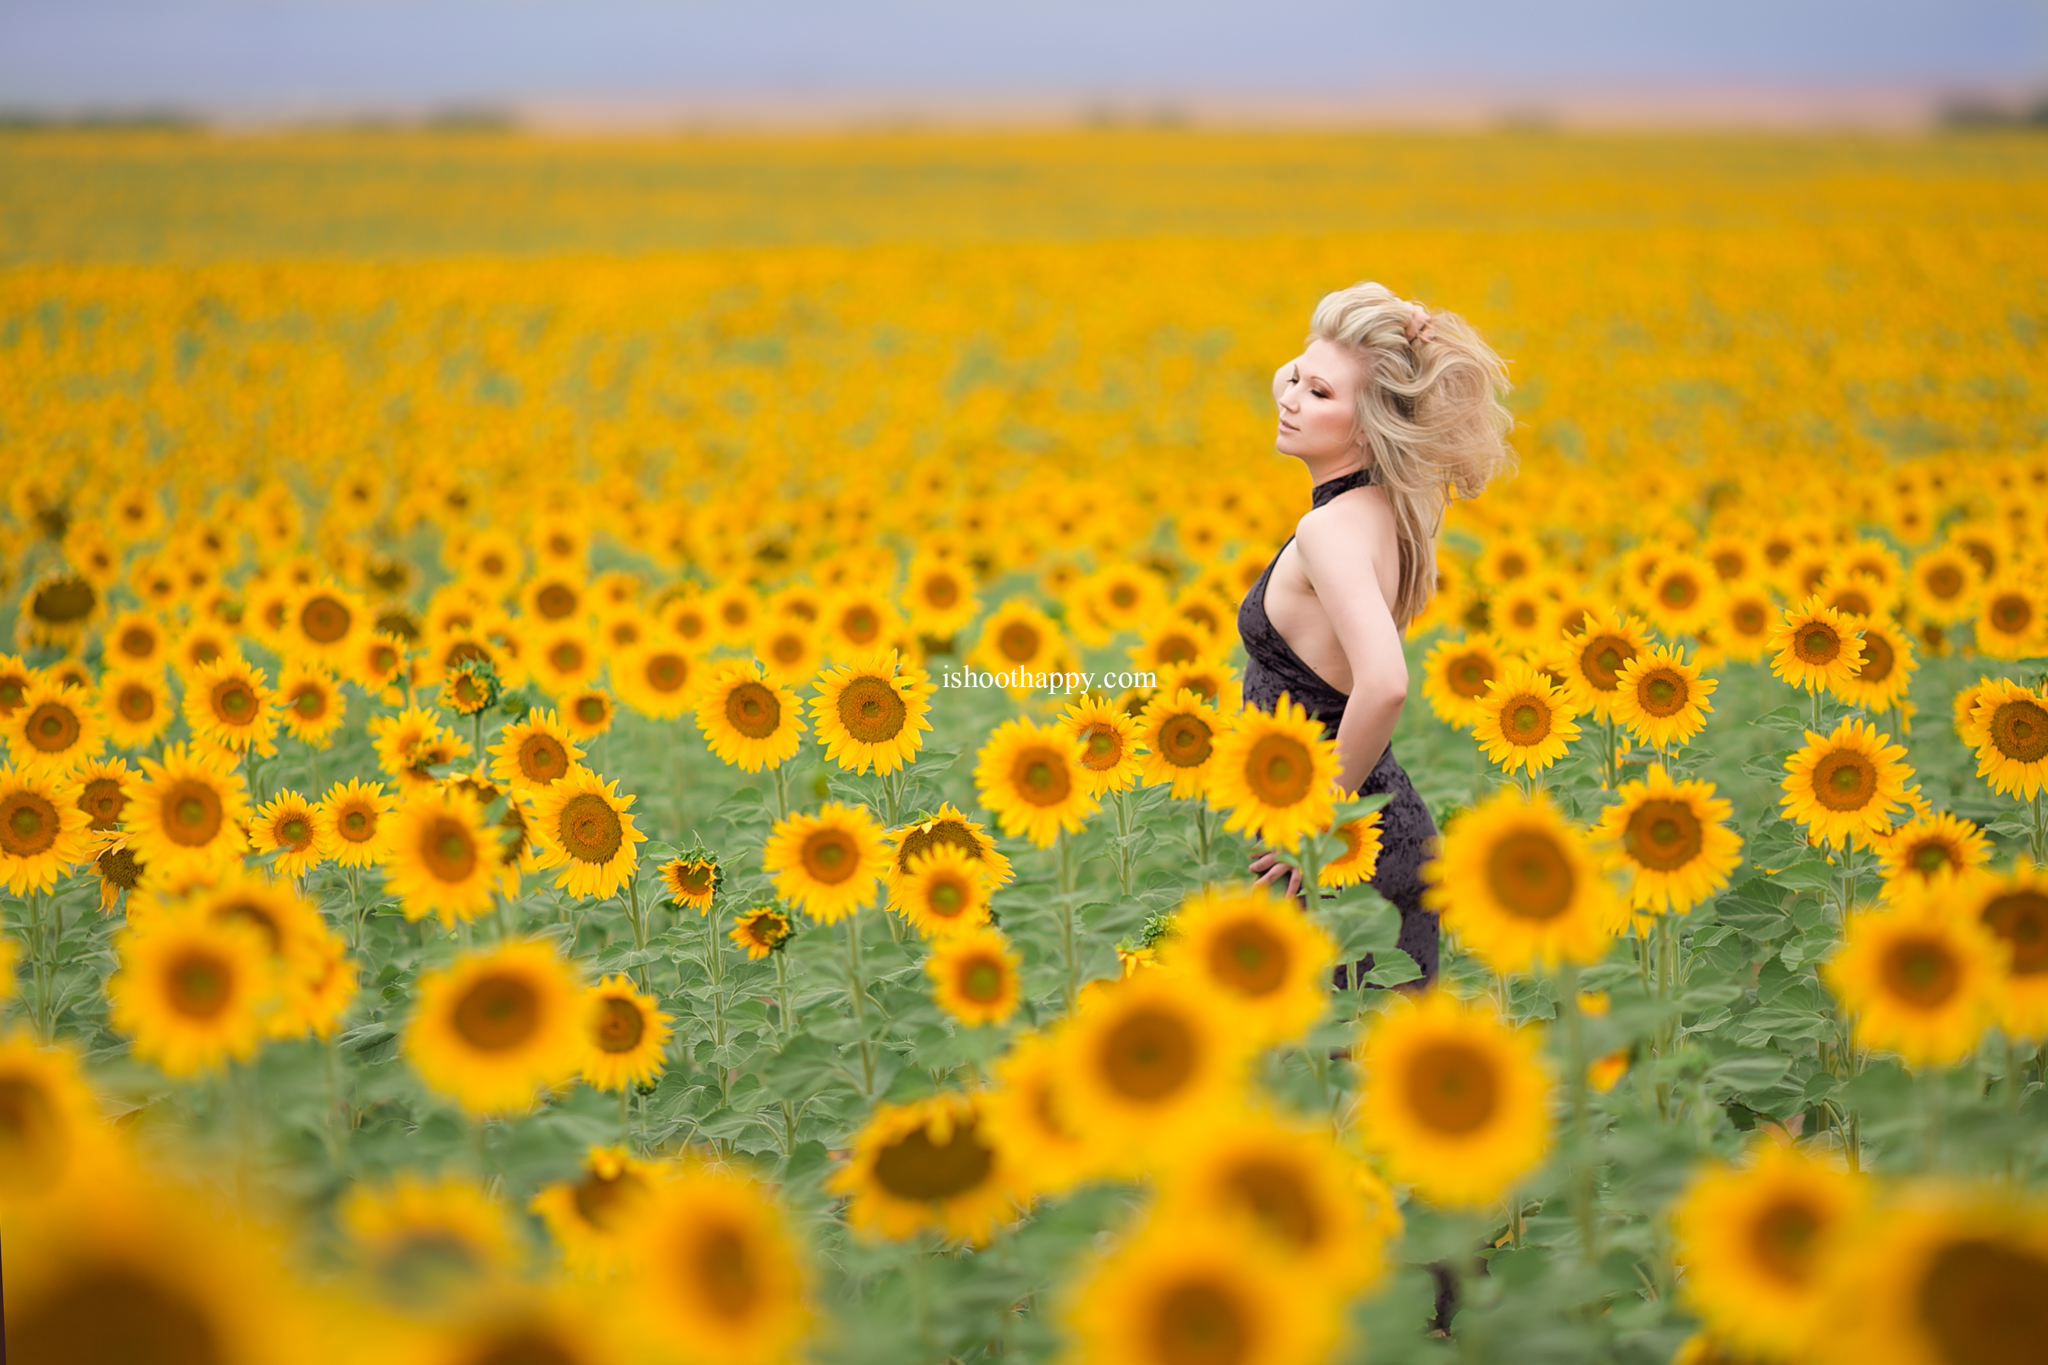 Denver fine art portraiture, Denver portrait photographer, whimsical photography in Denver, beautiful portraits, denver best portrait photographer, sunflower field, beautiful girl in a sunflower field